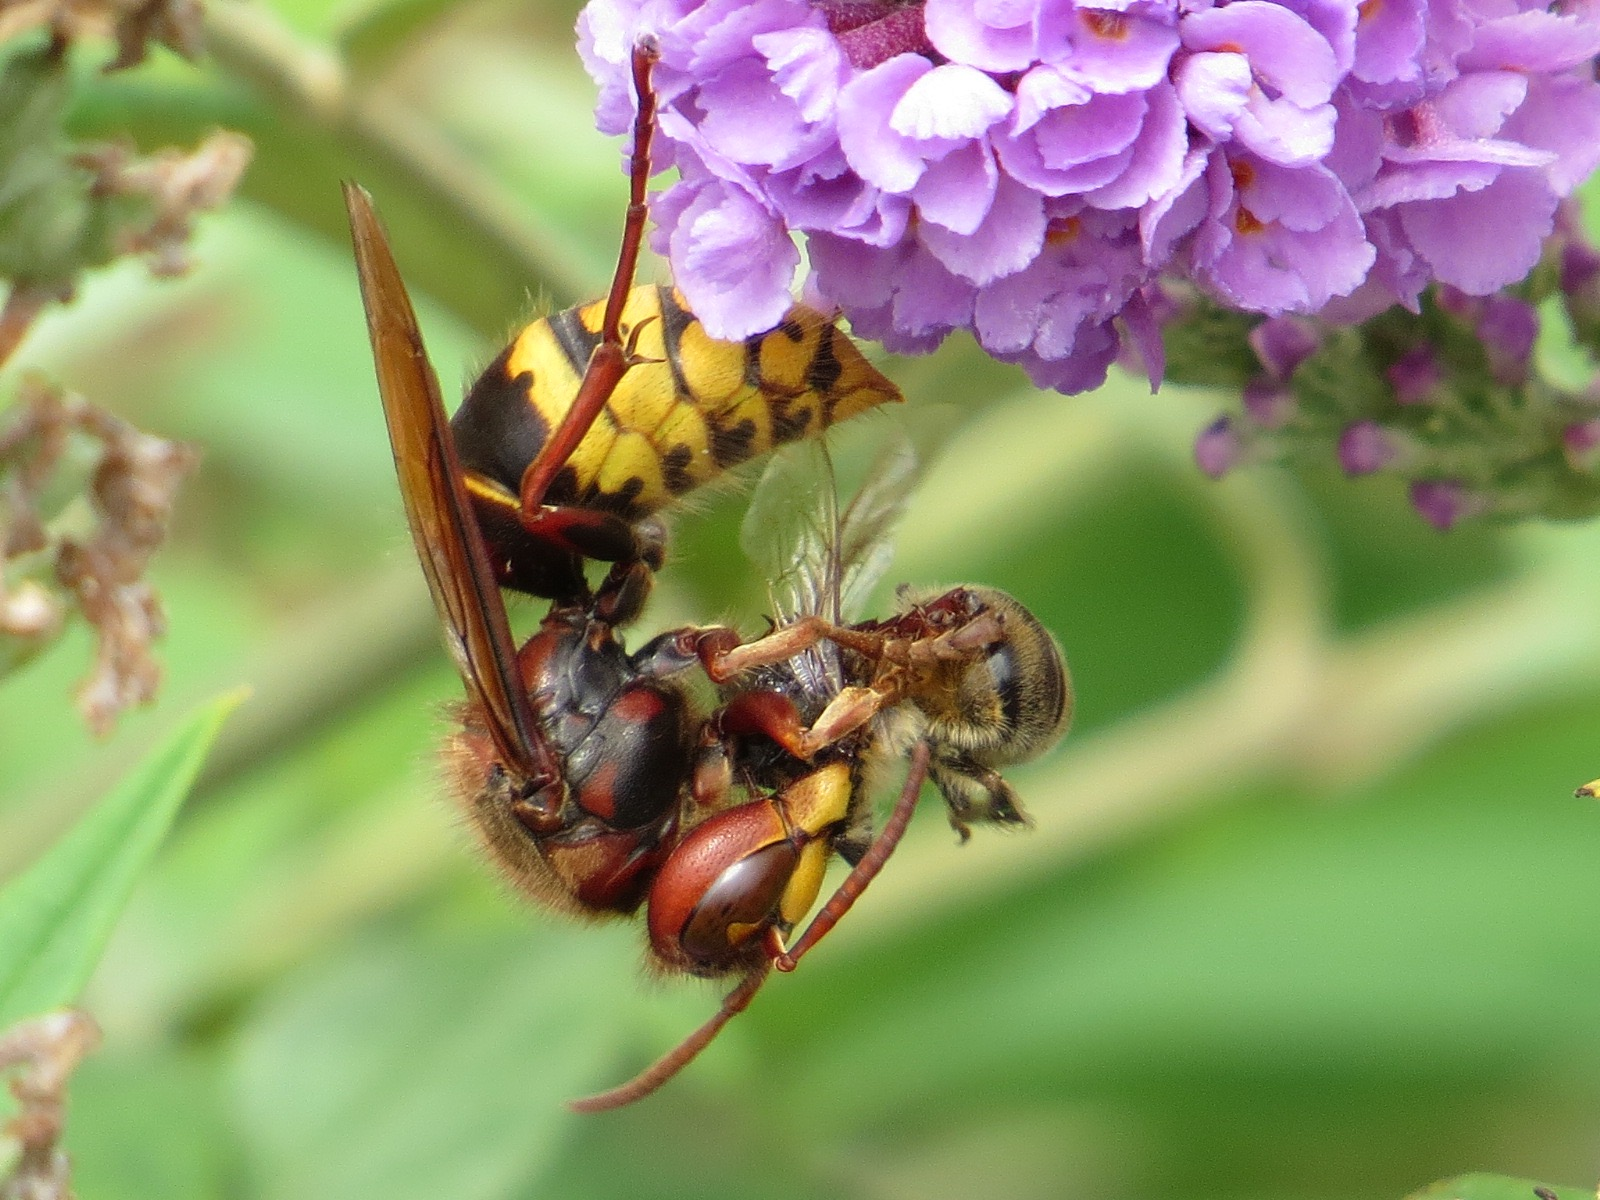 They Will Take Larger Prey, But This One Caught And Dispatched A Honey Bee  (Apis Mellifera; Another Eurasian Species). Worth Opening Up This Image For  A ...